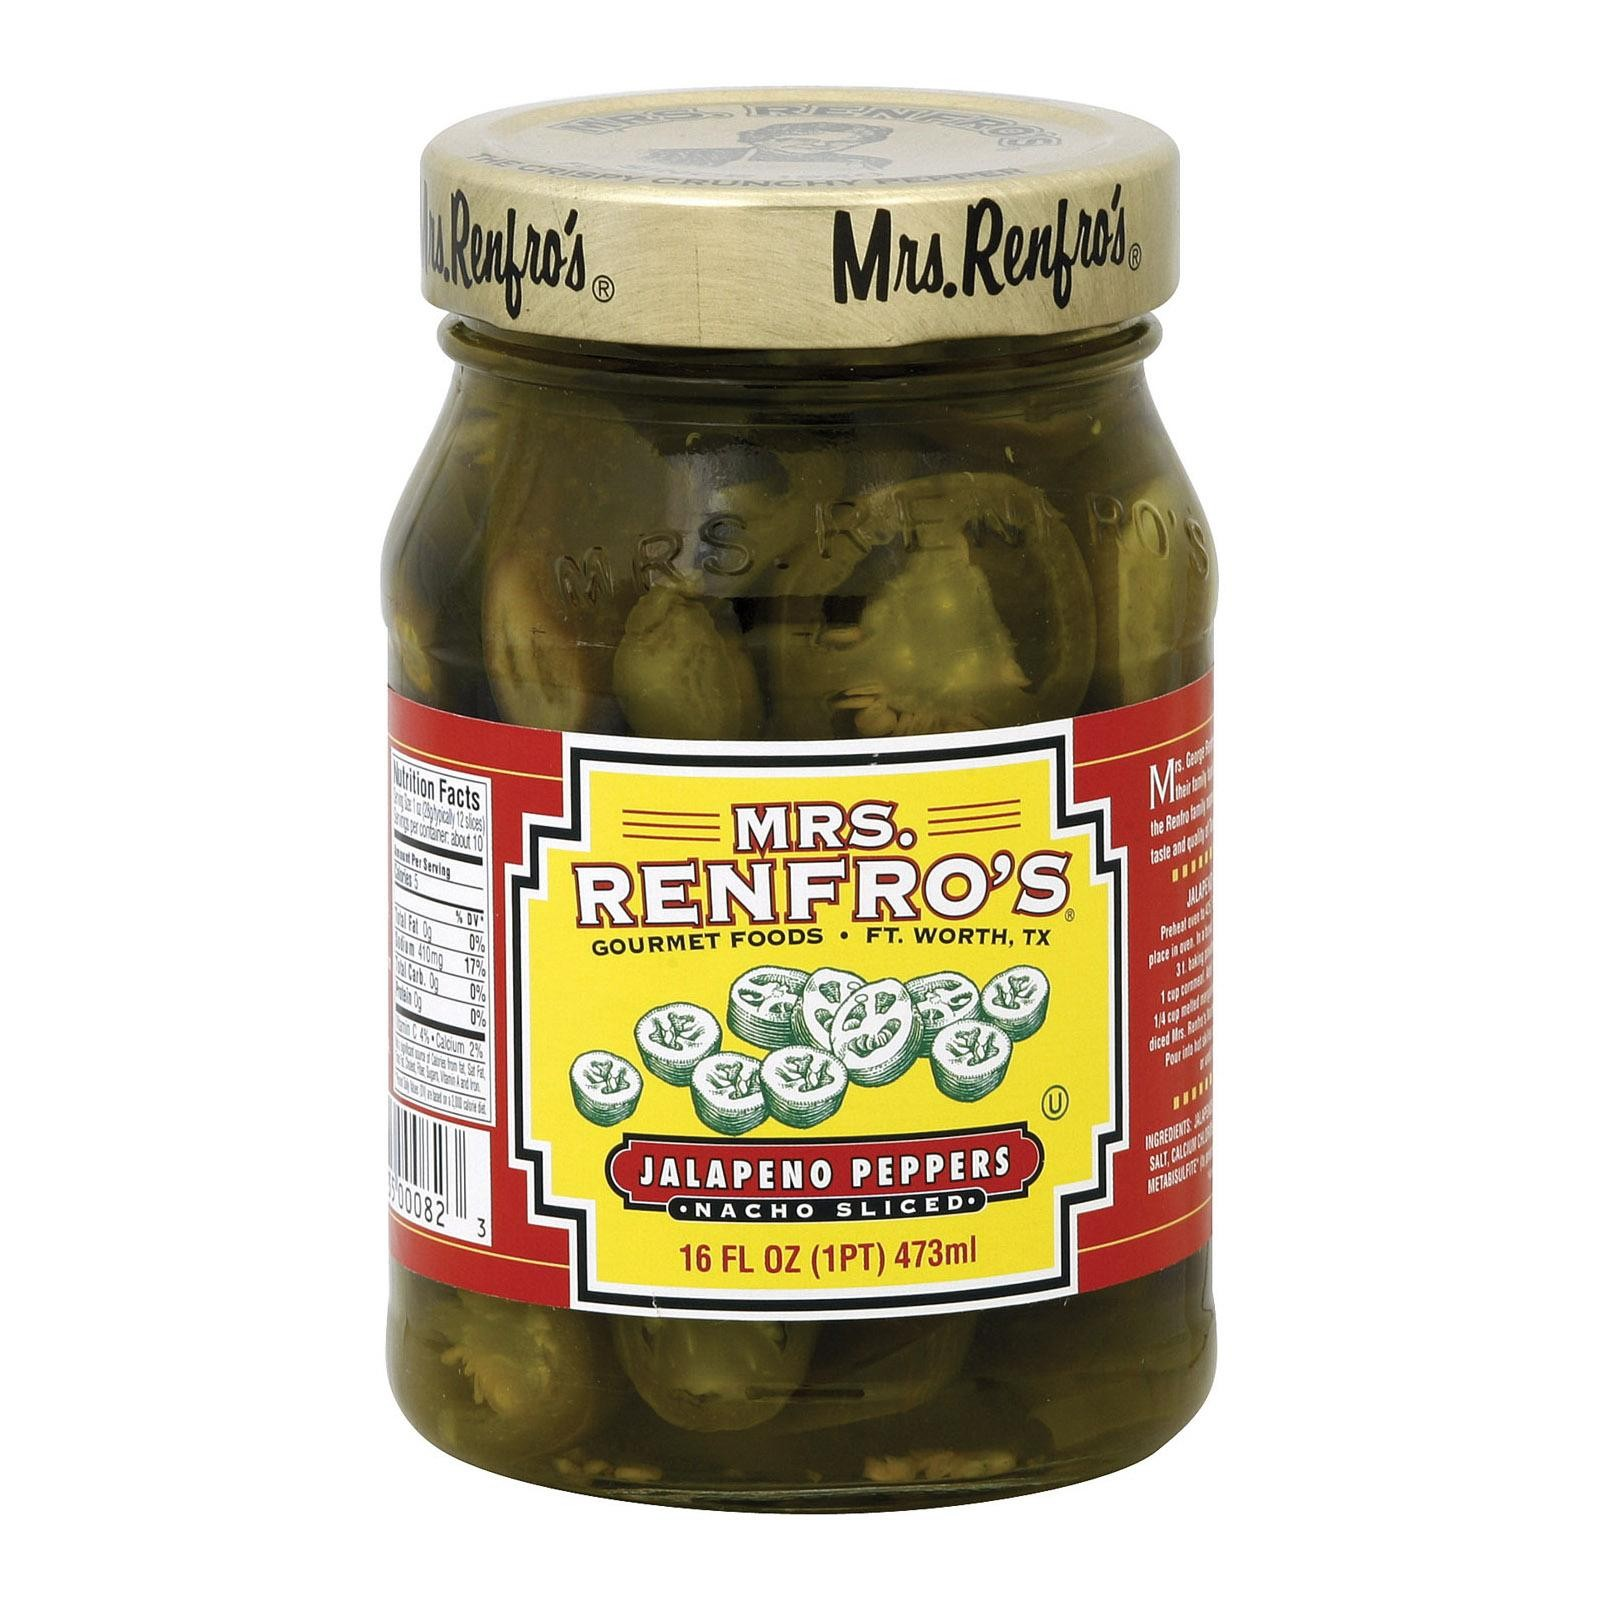 Mrs. Renfro's Nacho Sliced Jalapeno Peppers - Pepper - Pack of 6 - 16 Oz.